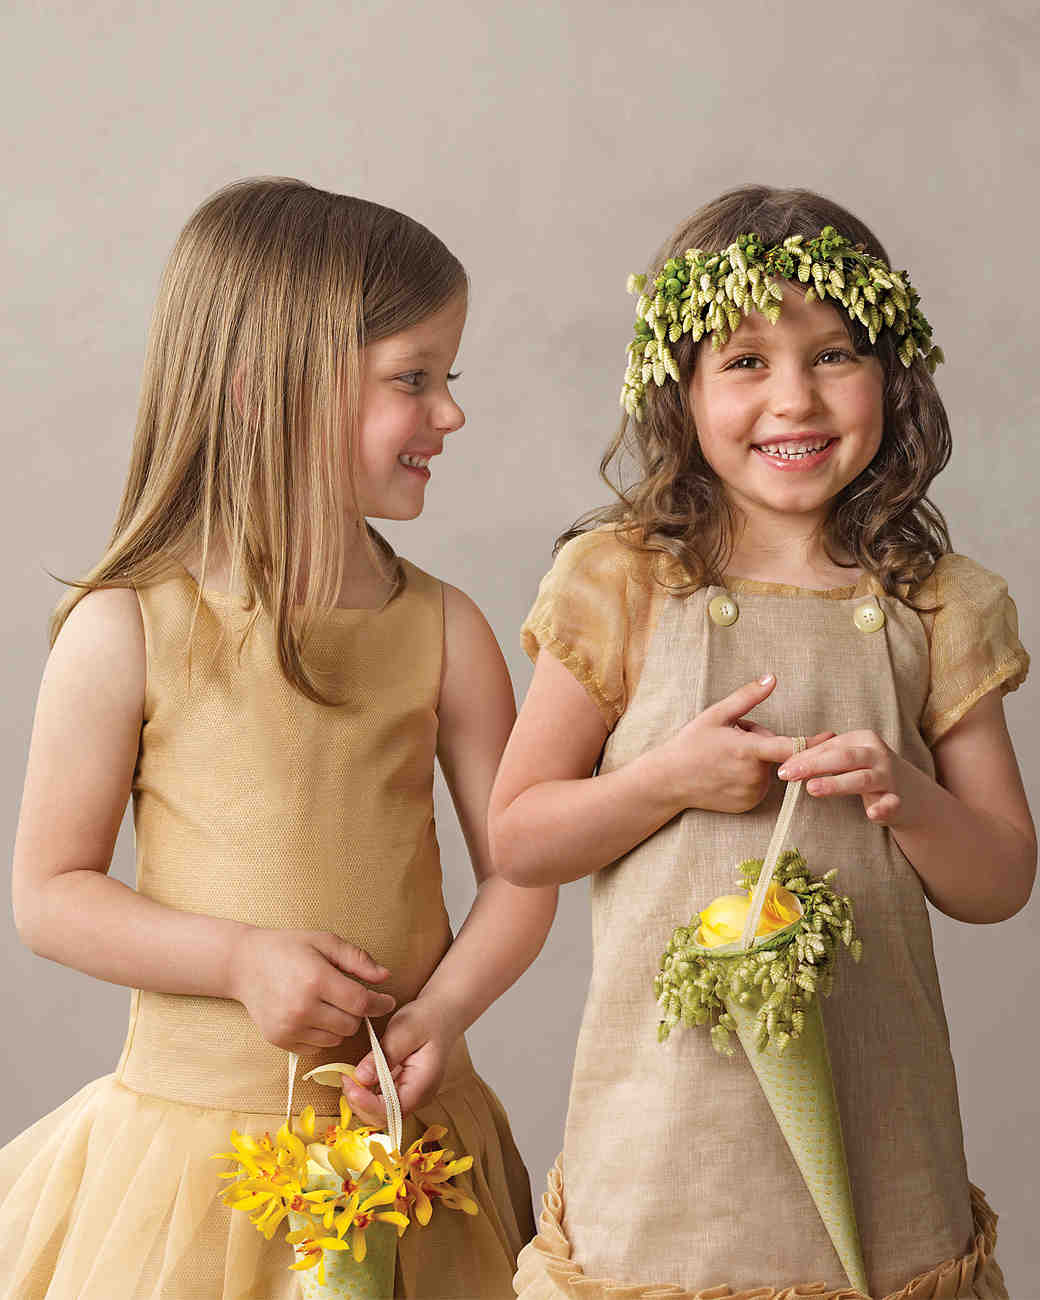 flower-girls-0811mwd107479.jpg